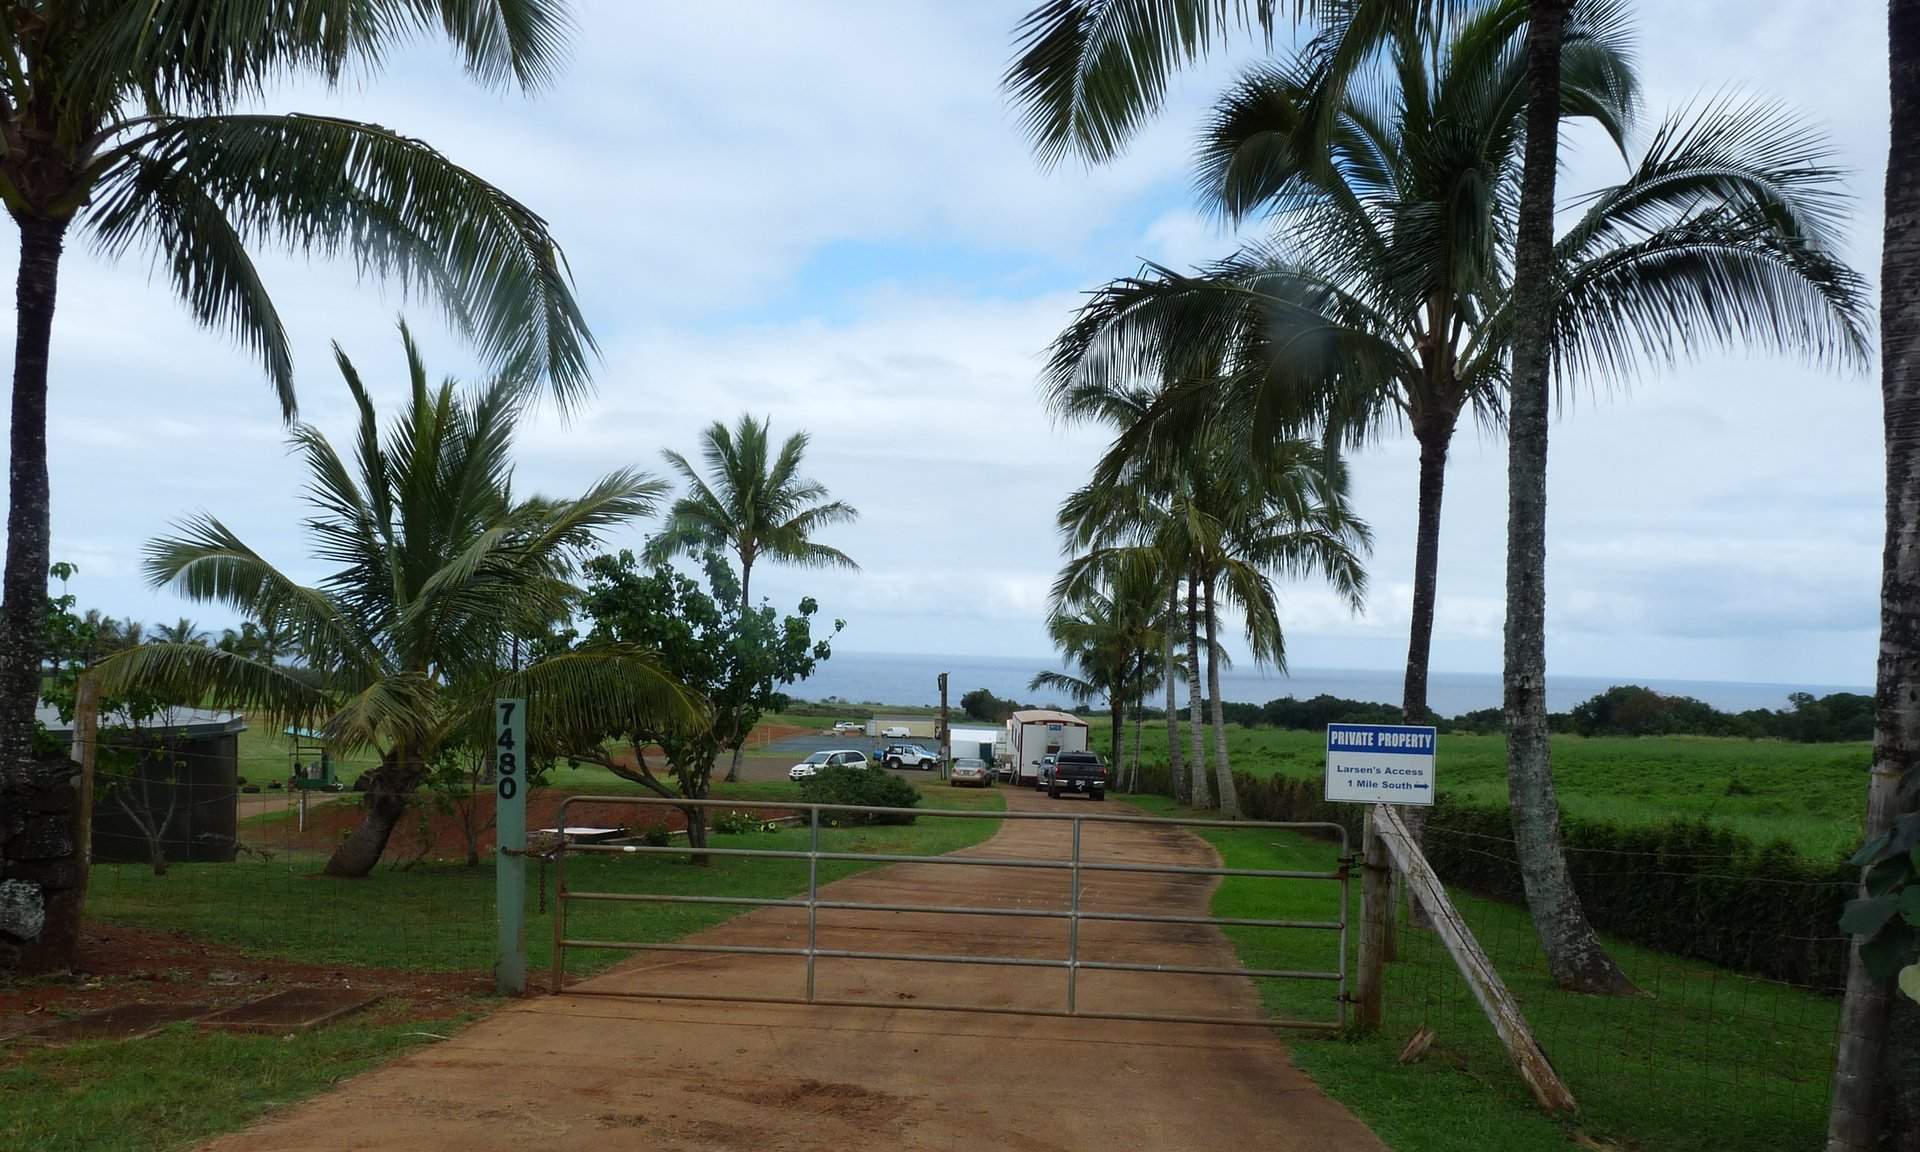 Facebook CEO Mark Zuckerberg is dropping multiple quiet title lawsuits filed over ownership of land located within his beachfront estate in Hawaii.